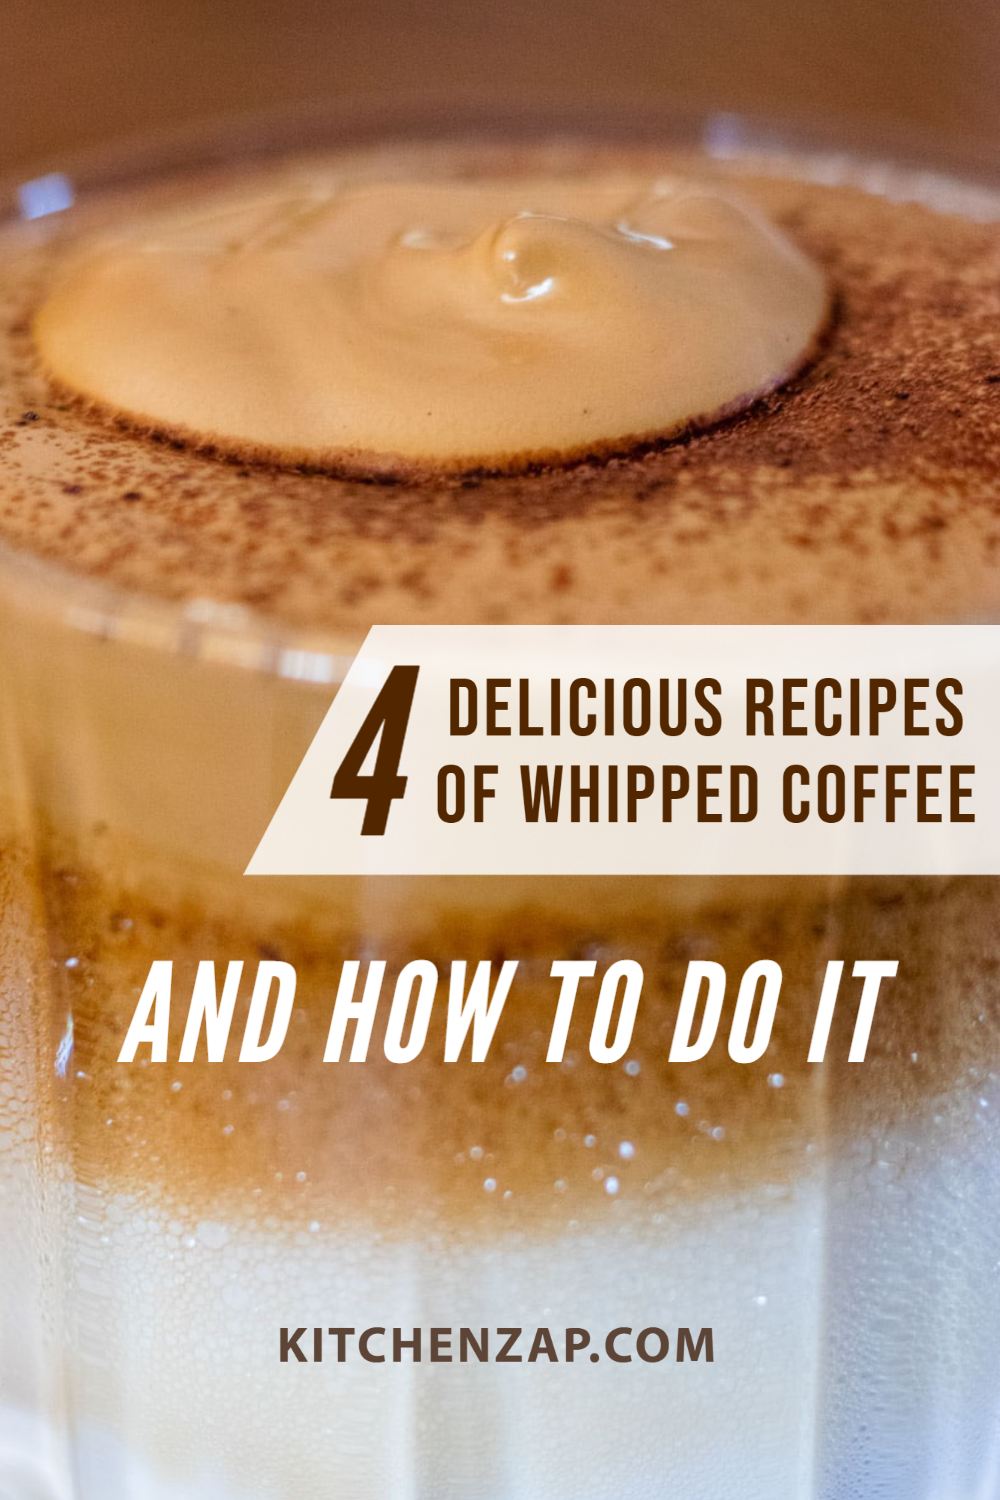 4 Delicious Recipes of Whipped Coffee and How to do it in